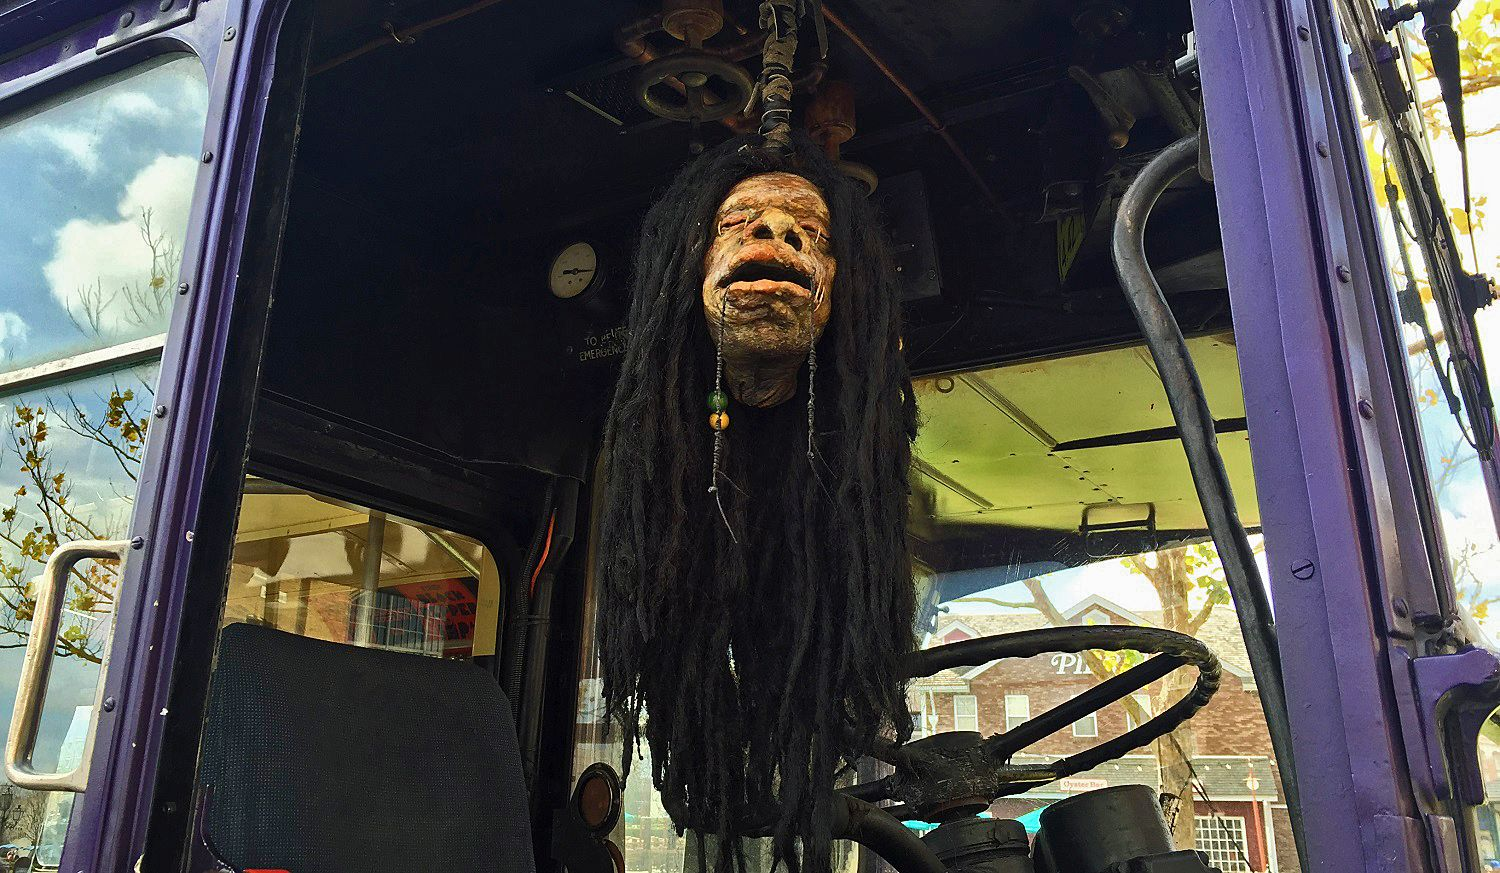 Shrunken Head inside the Knight Bus near Diagon Alley - edited.jpg